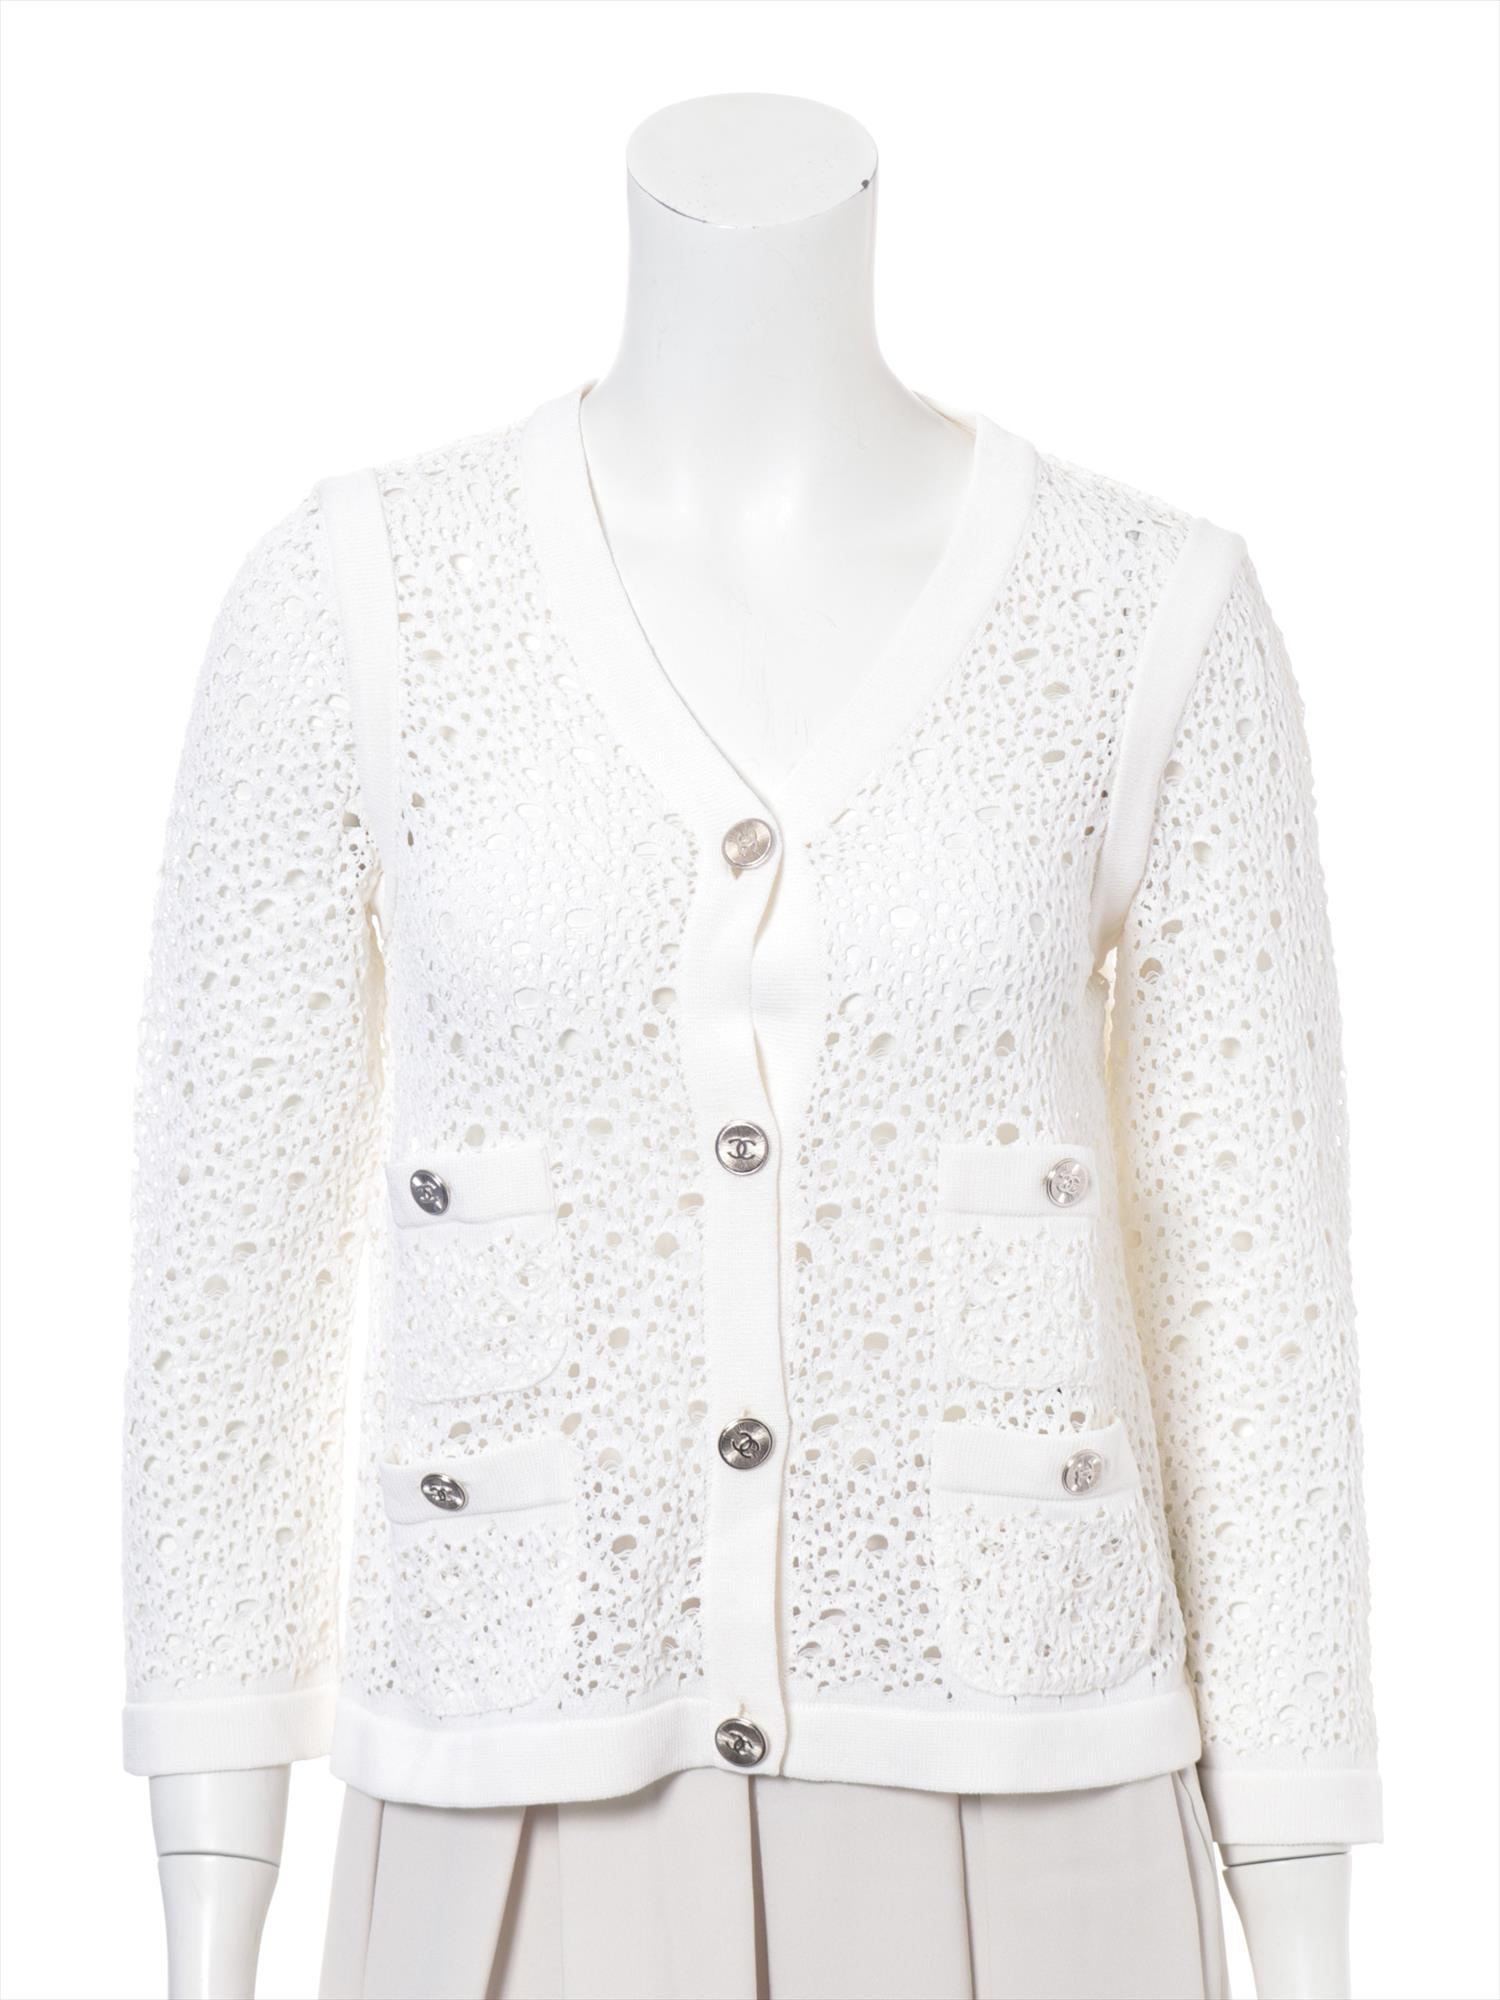 [Used goods] Chanel cotton cardigan size: 38 Ladies white lace nylon